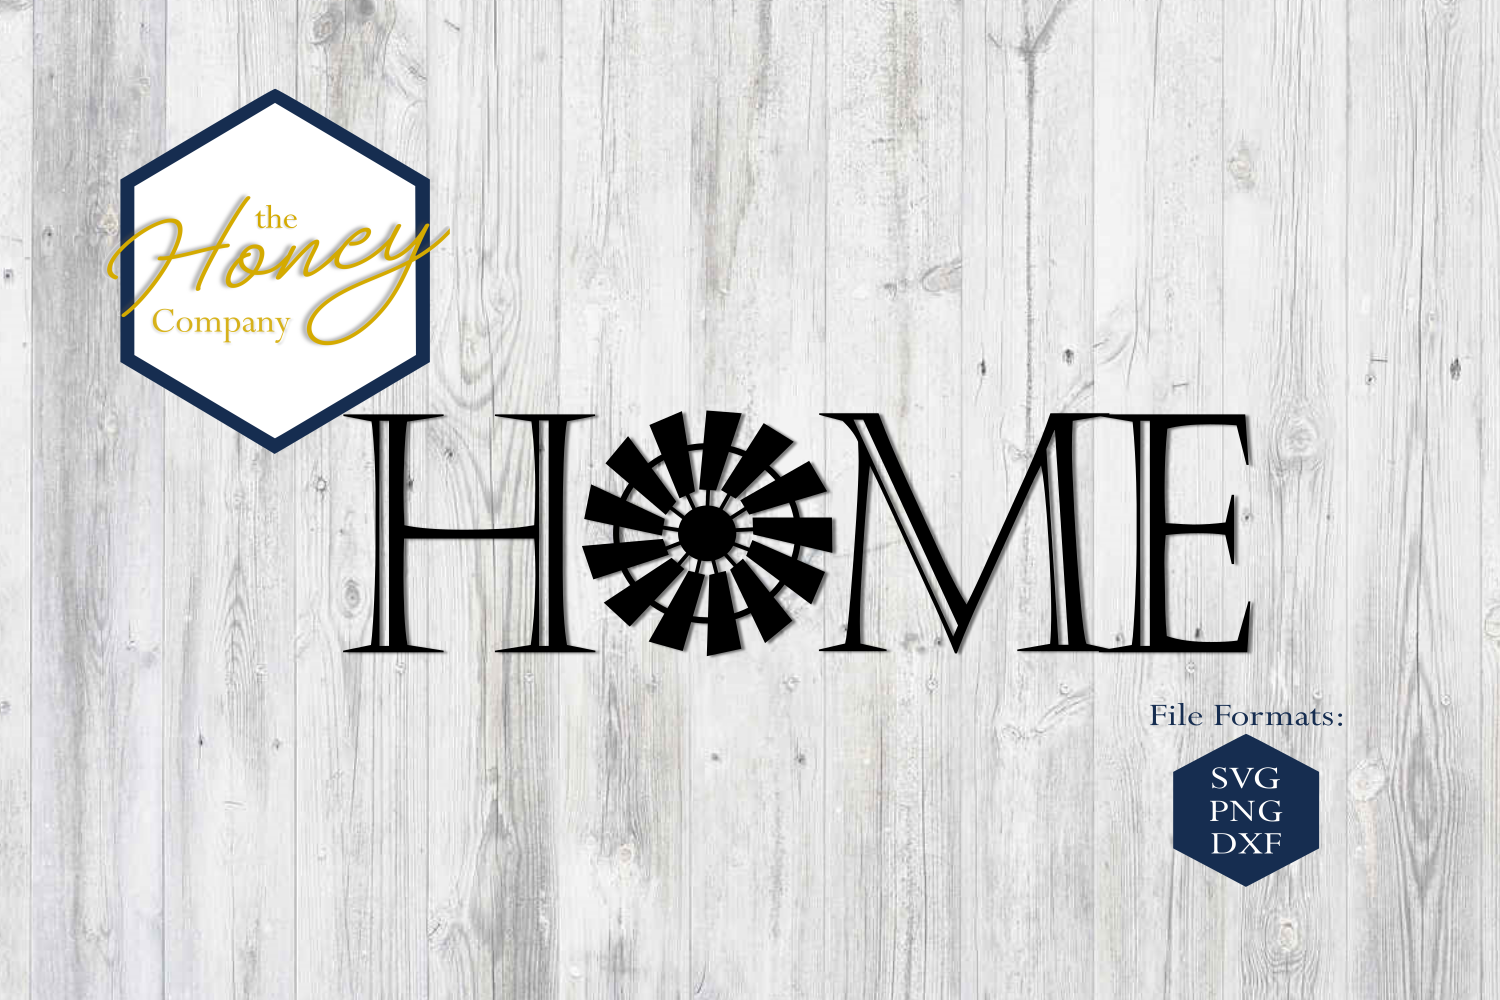 Download Free Home Graphic By The Honey Company Creative Fabrica for Cricut Explore, Silhouette and other cutting machines.